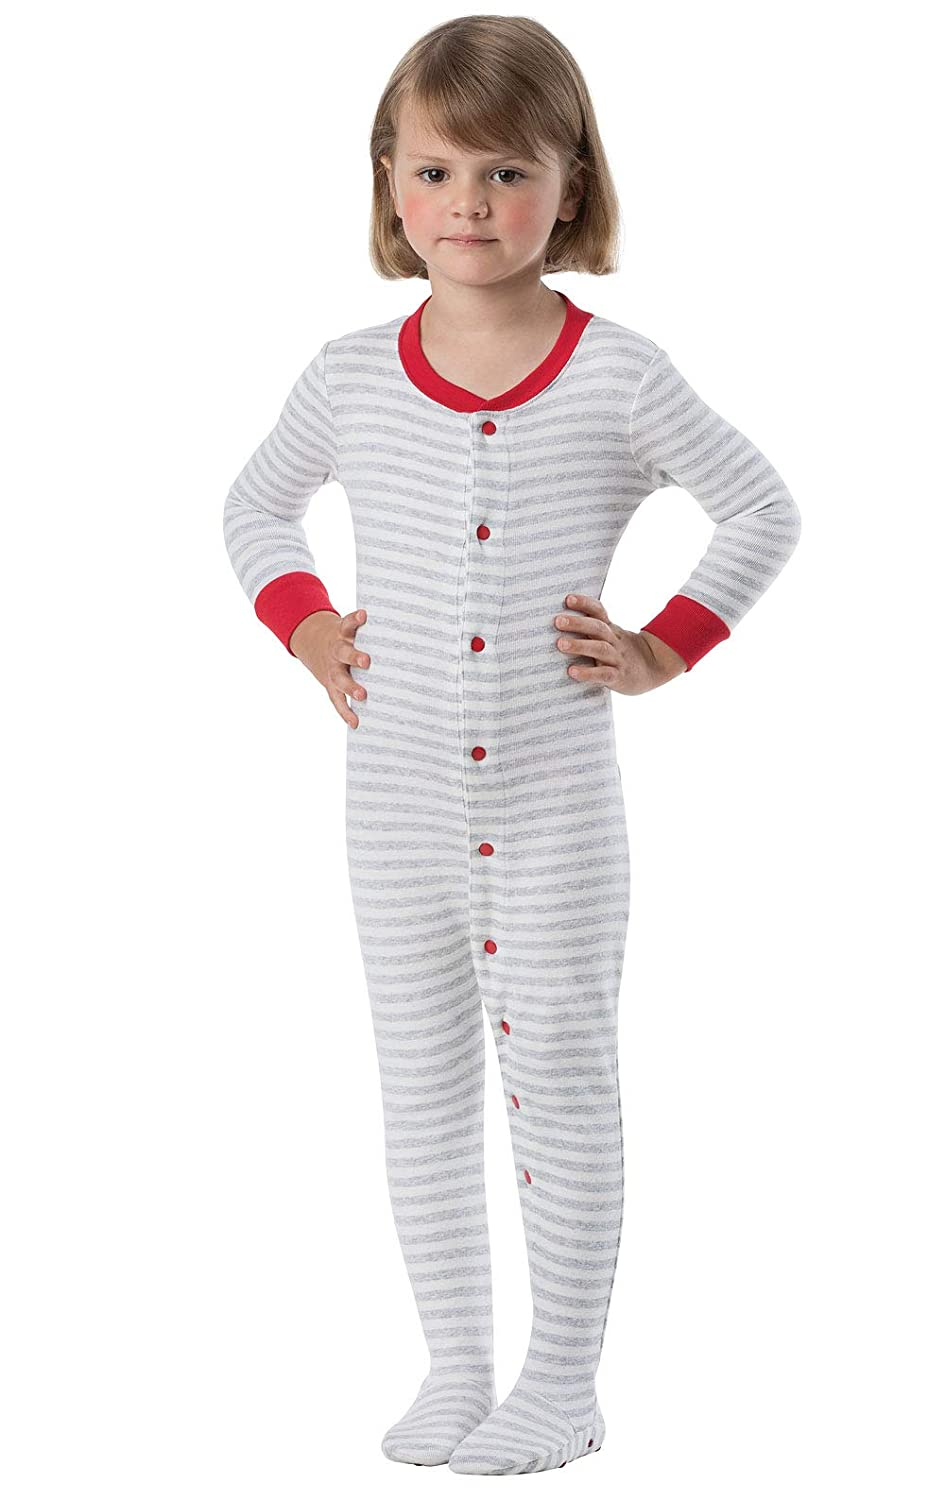 f8c37eeb45 Amazon.com  PajamaGram Cotton Dropseat Footie Onesie Pajamas for Toddler  and Infant  Clothing